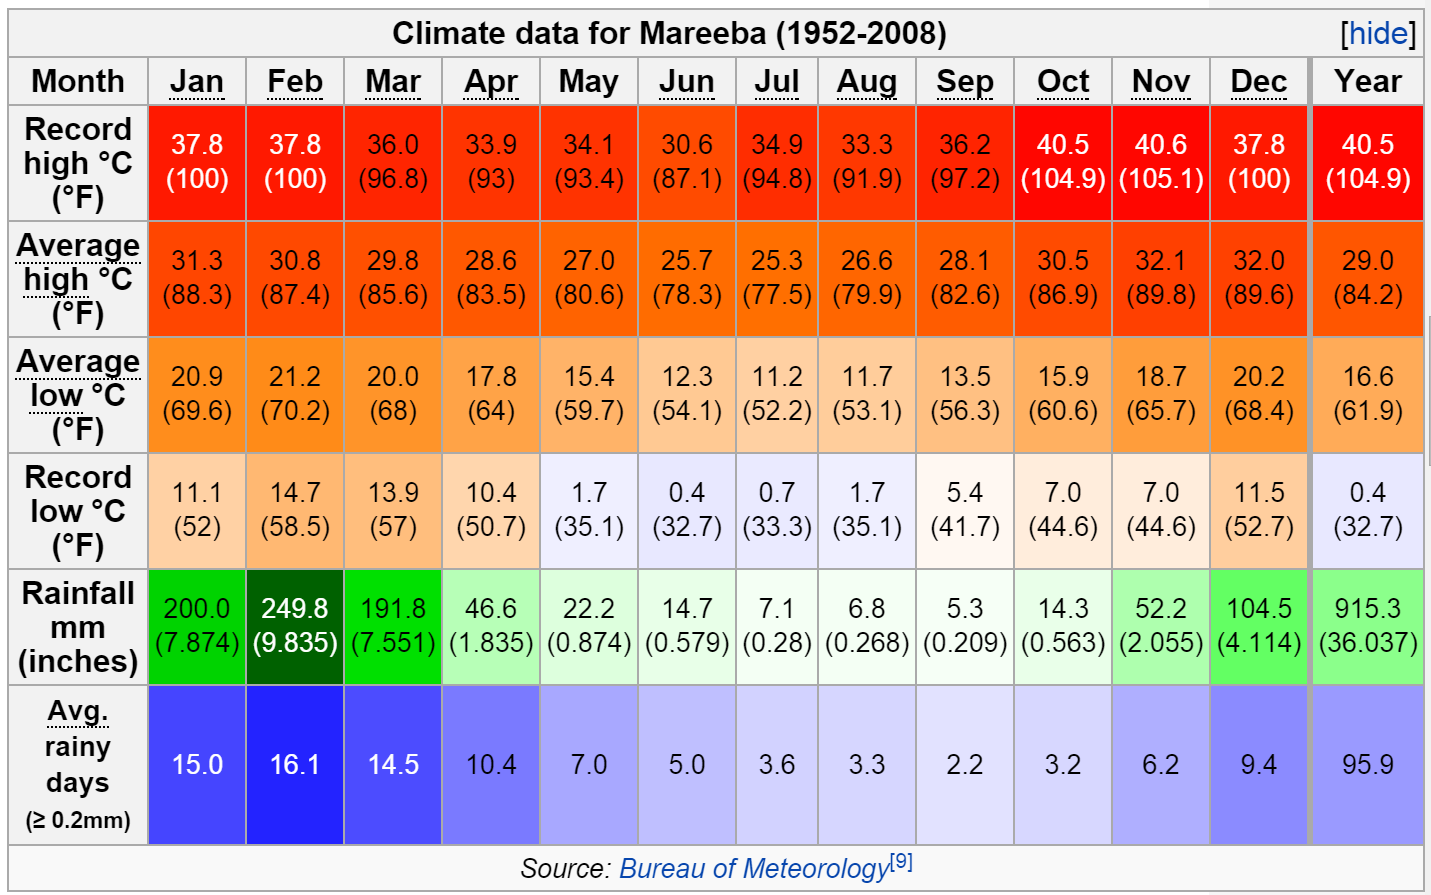 Yearly climate data for Mareeba, Queensland, Australia